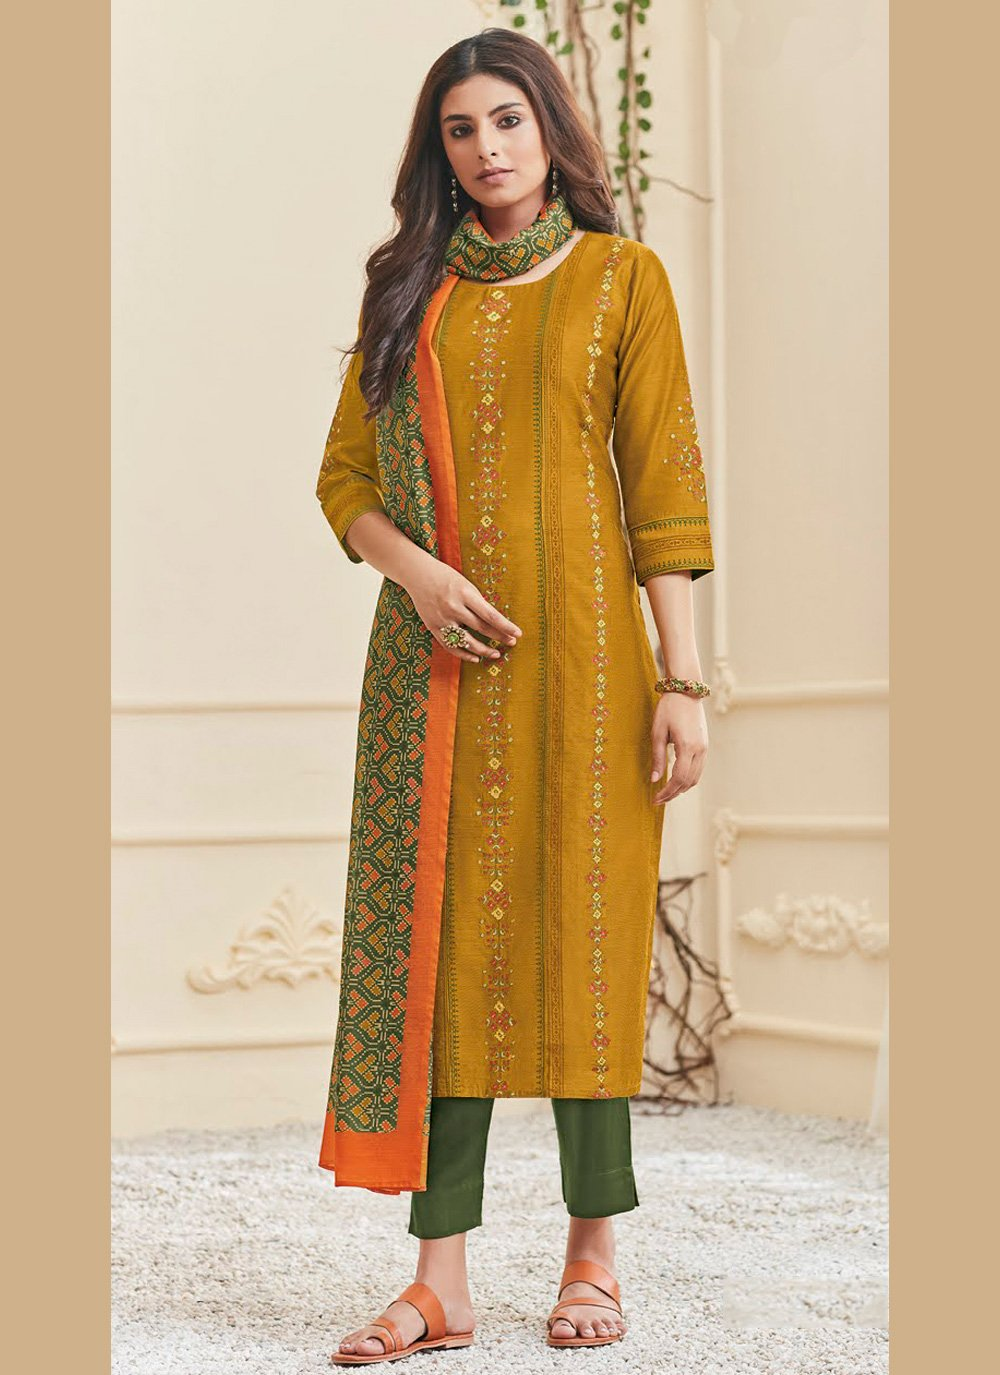 Polly Cotton Resham Mustard Pant Style Suit